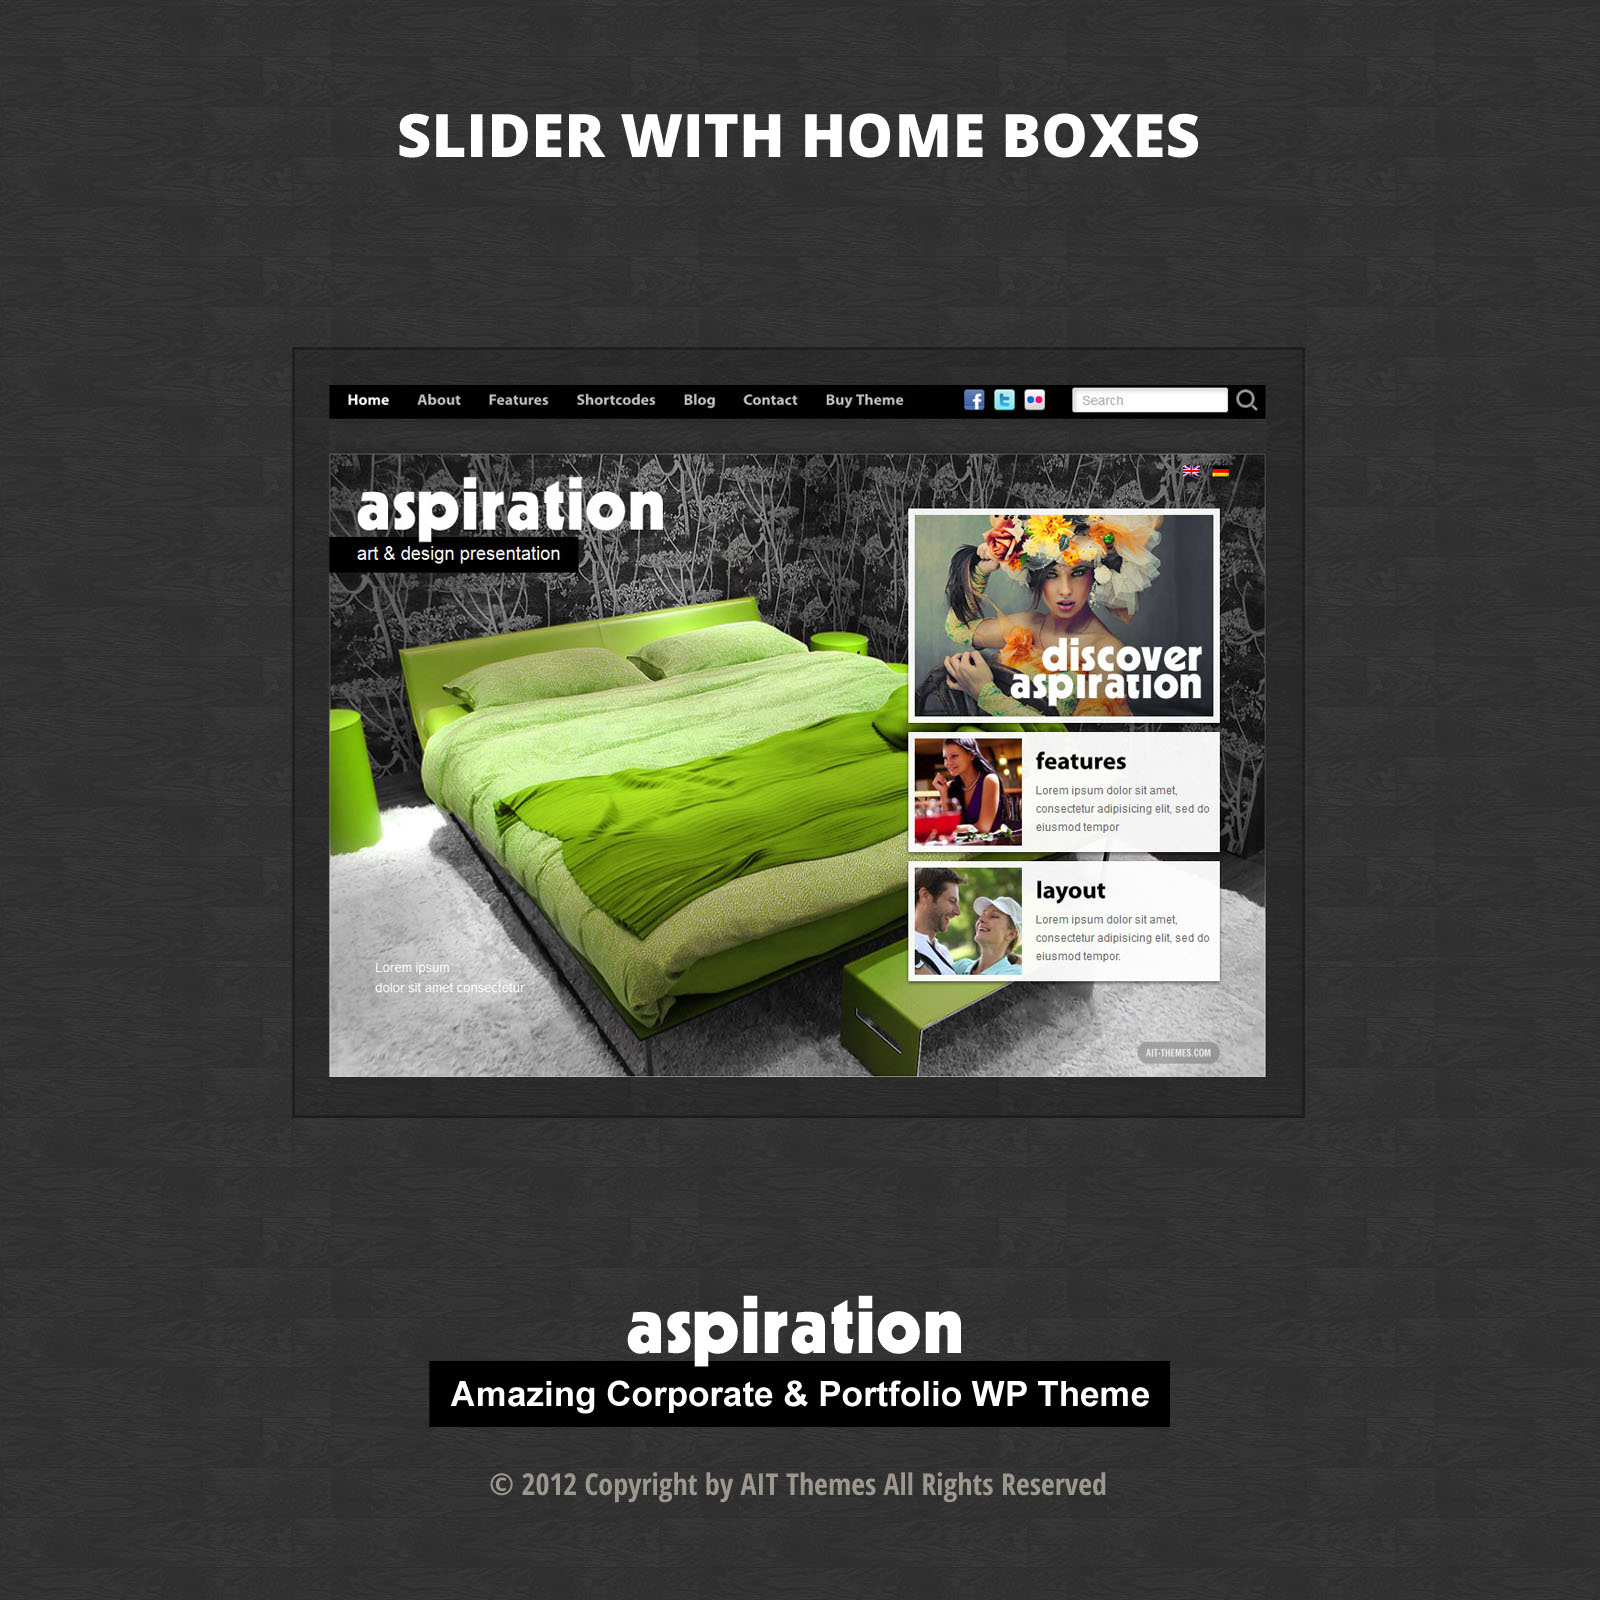 Content with Slider & Home Boxes